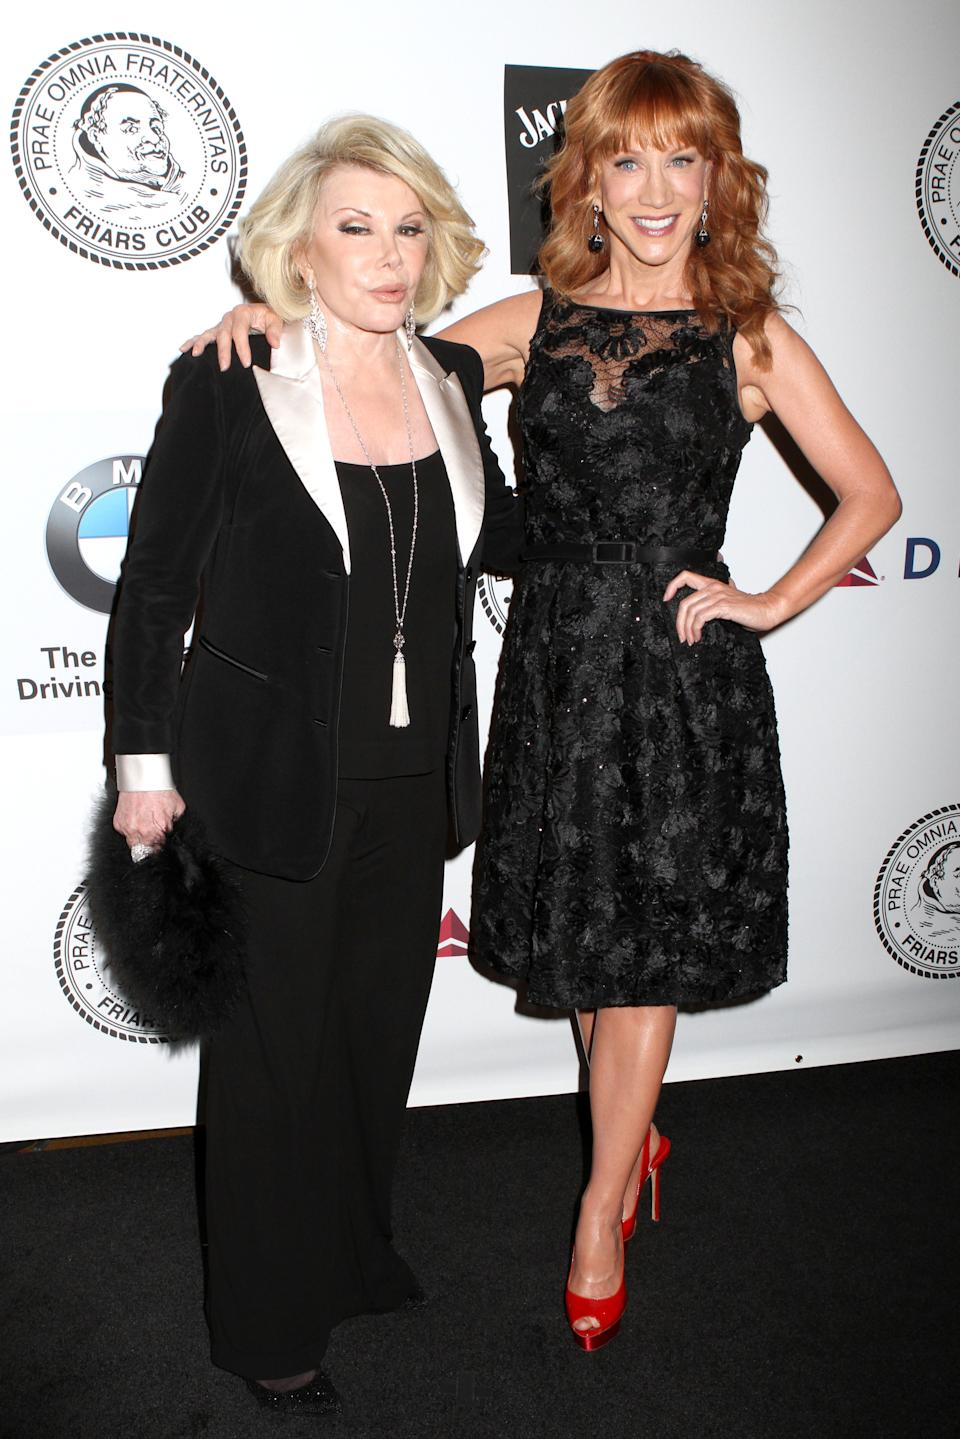 Comedians Joan Rivers and Kathy Griffin pose for photos at the Friars Club Roast of Don Rickles at the Waldorf Astoria on Monday, June 24, 2013 in New York. (Photo by Greg Allen/Invision/AP)